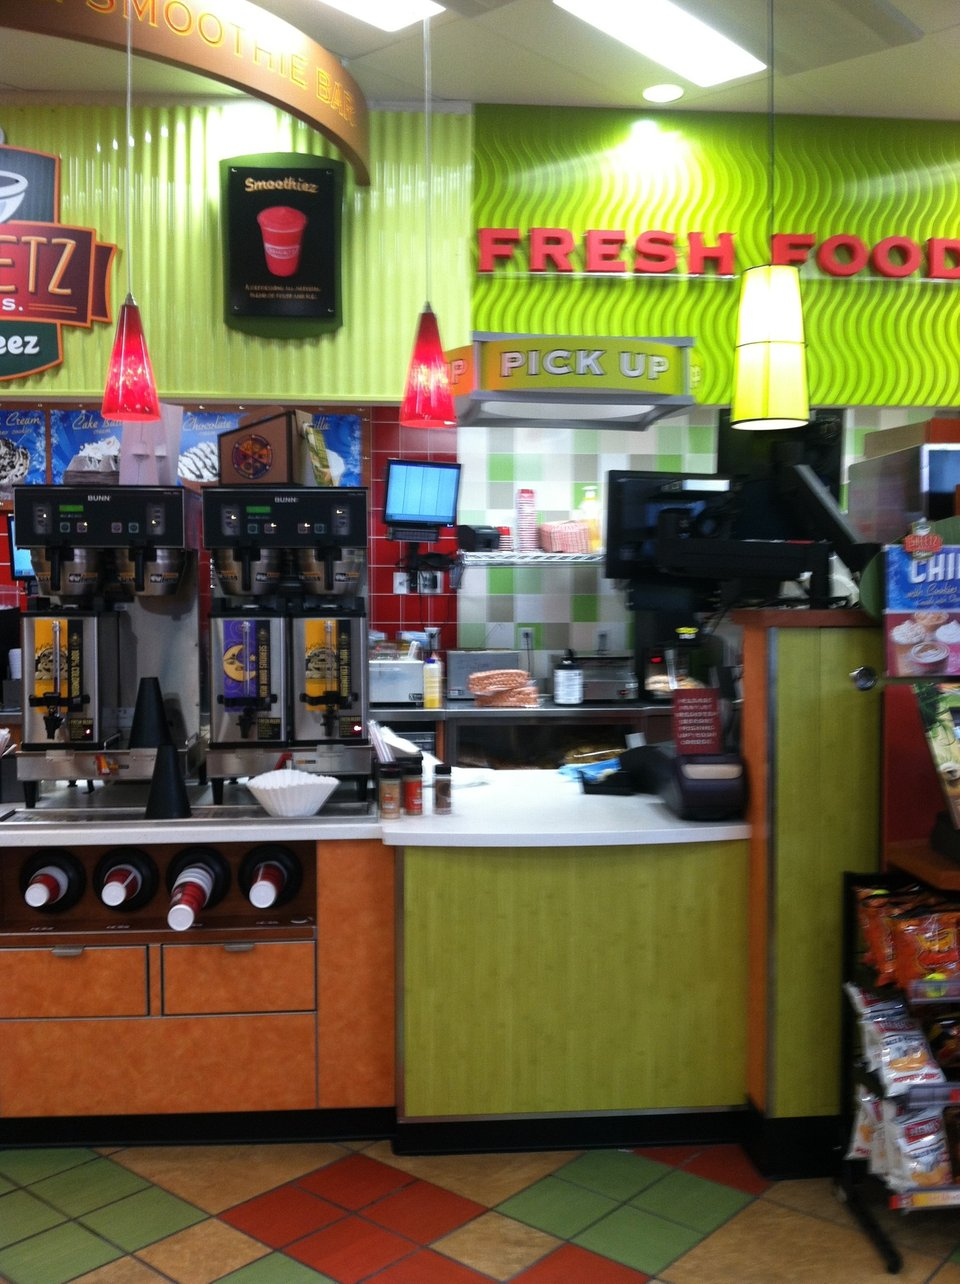 Sheetz Greensboro